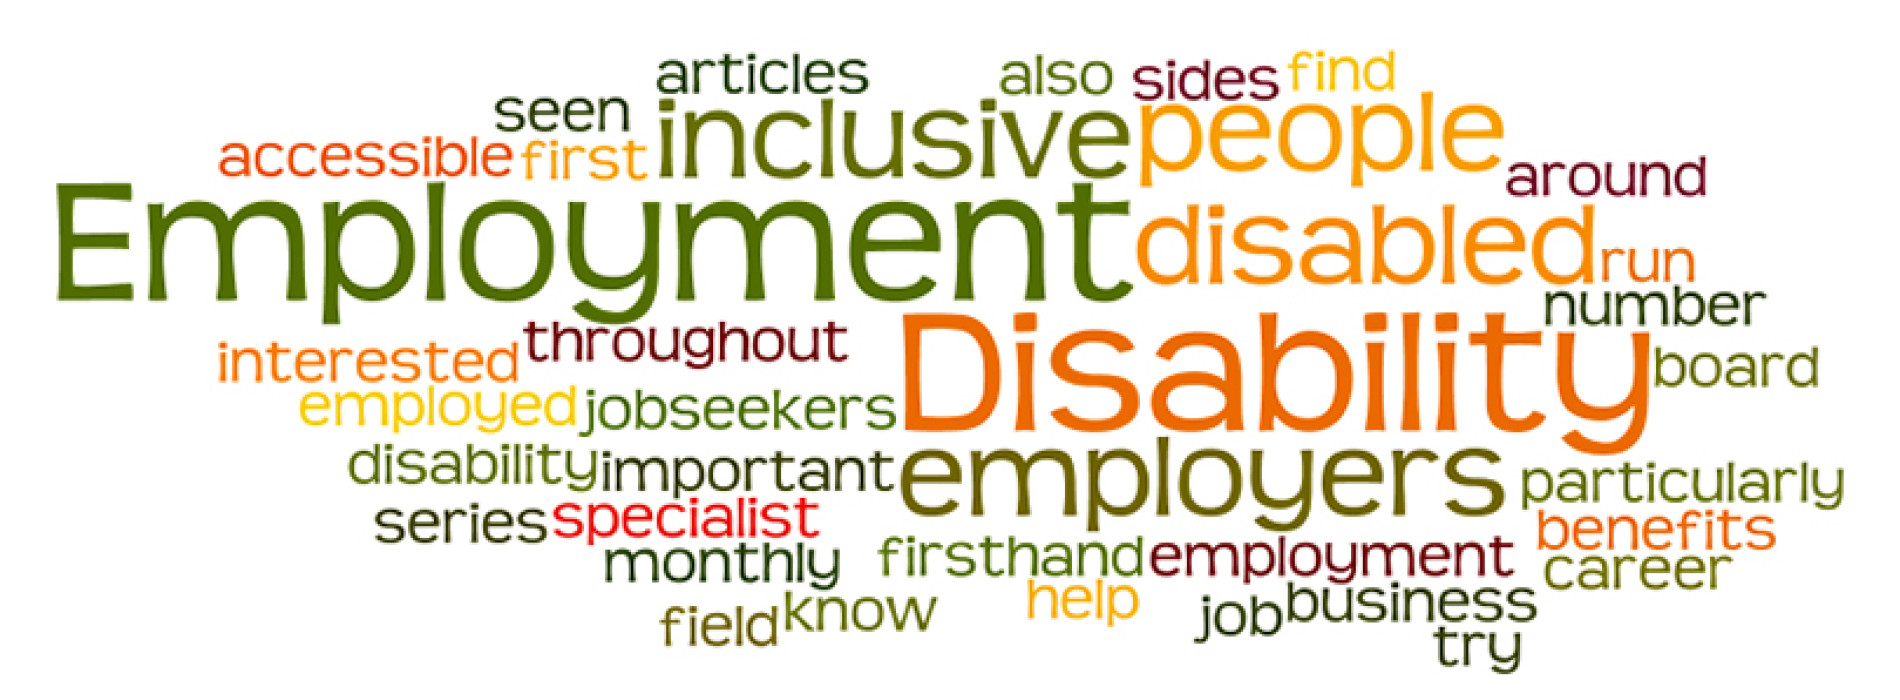 Disability and employment: using your personality to get a job